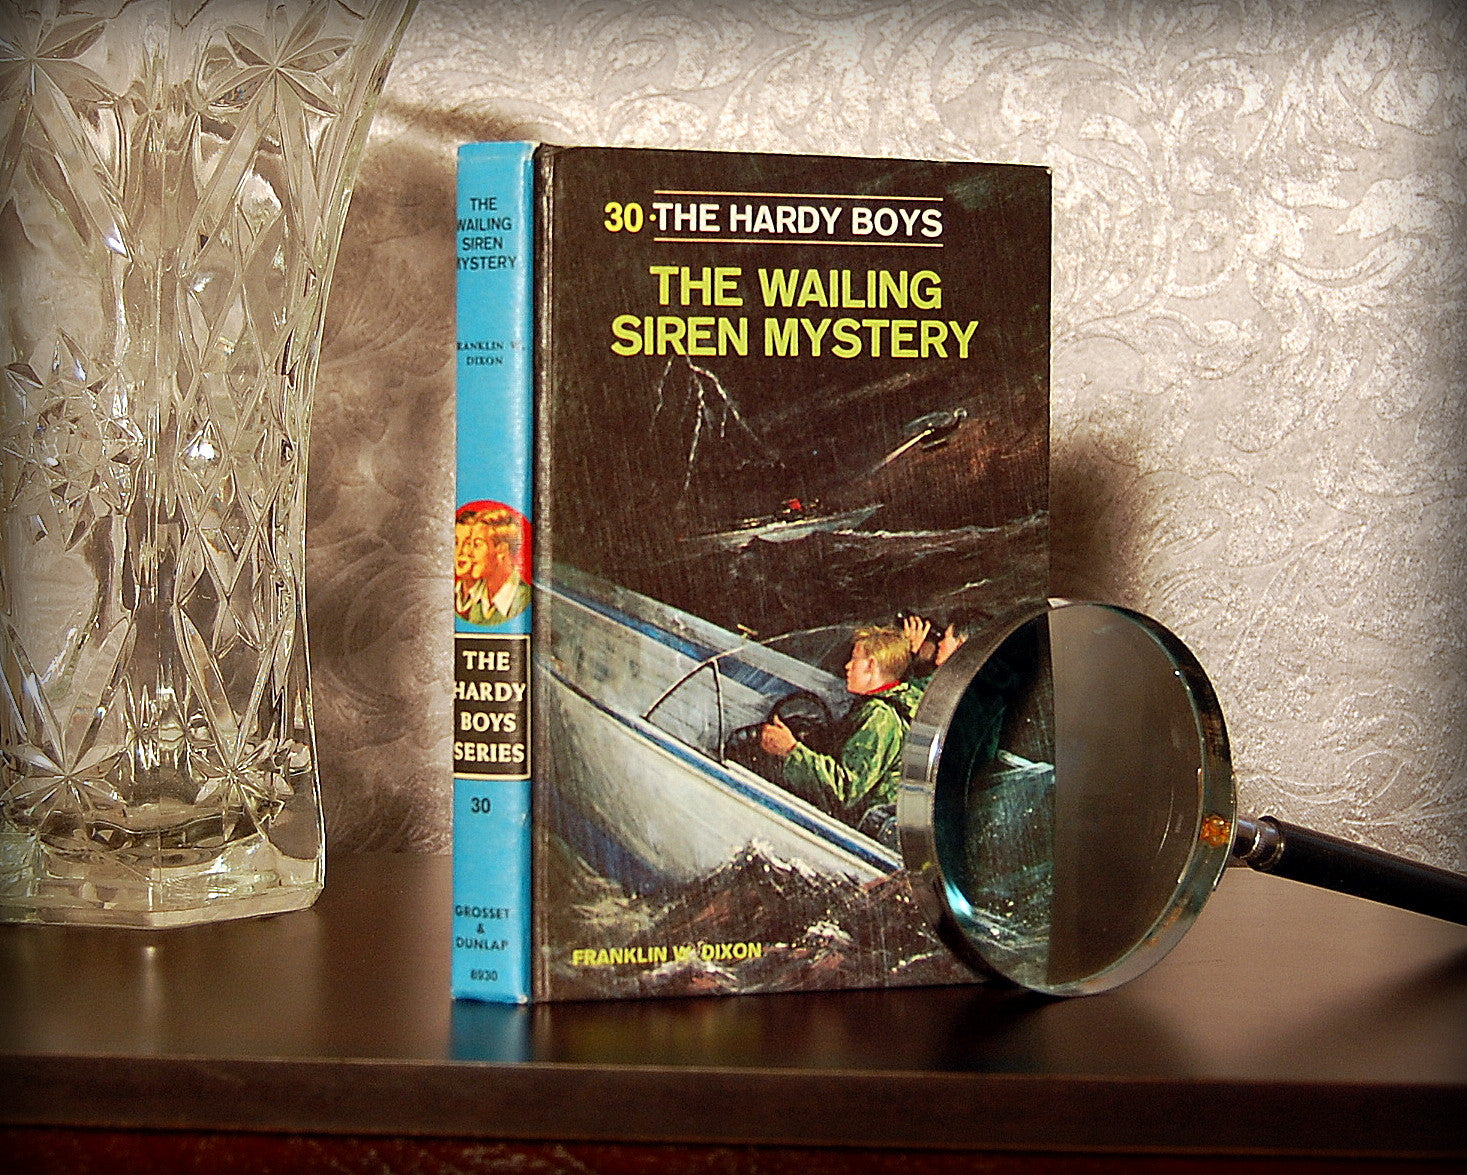 The Hardy Boys: The Wailing Siren Mystery (1978) - Secret Safe Books  - 1